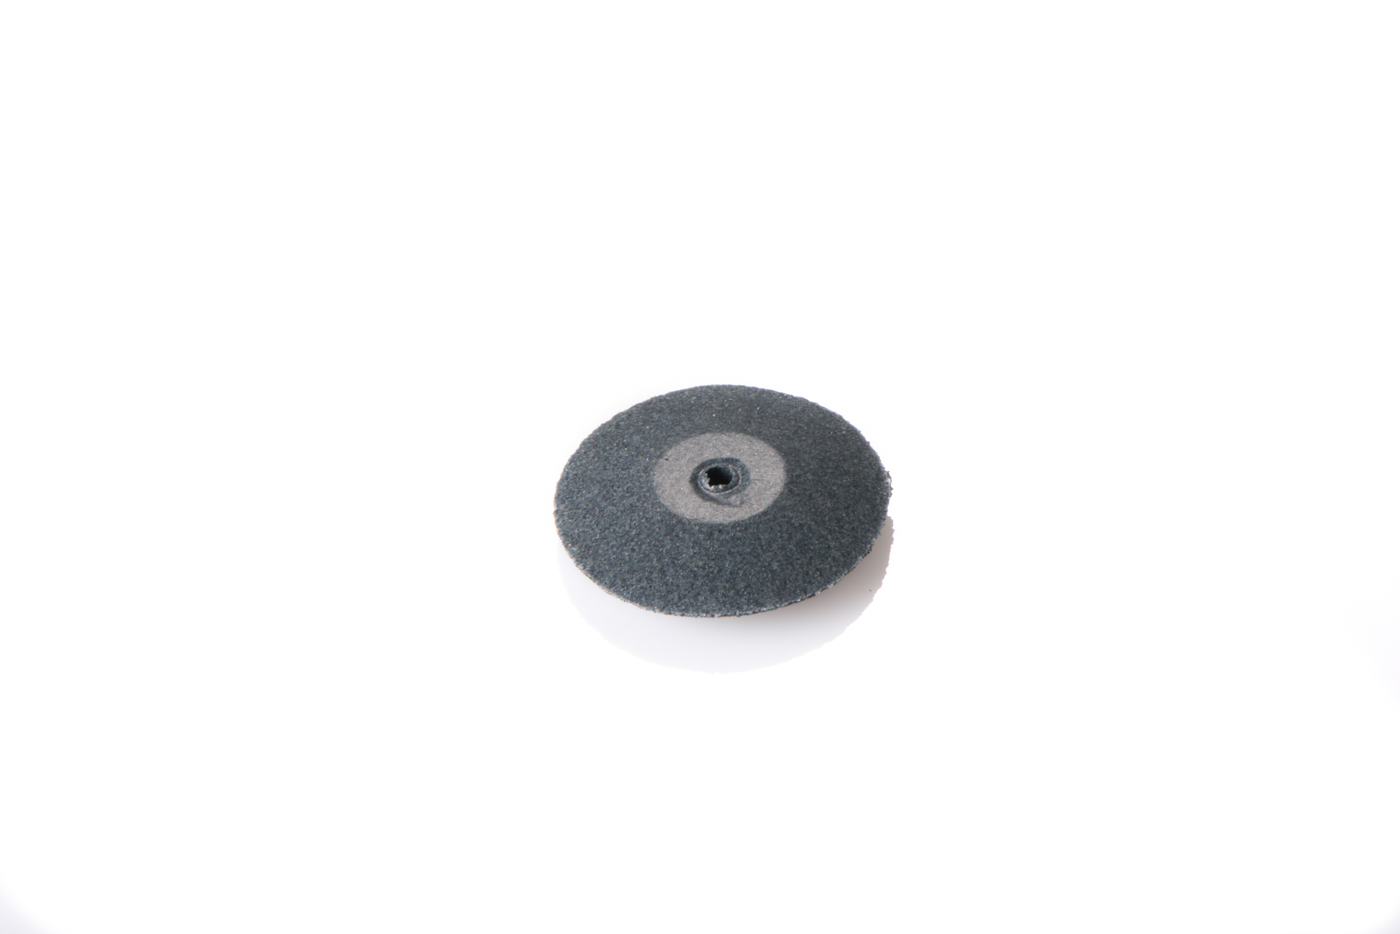 Pacific Abrasives Silicone Carbide Knife Edge Wheels, 5/8